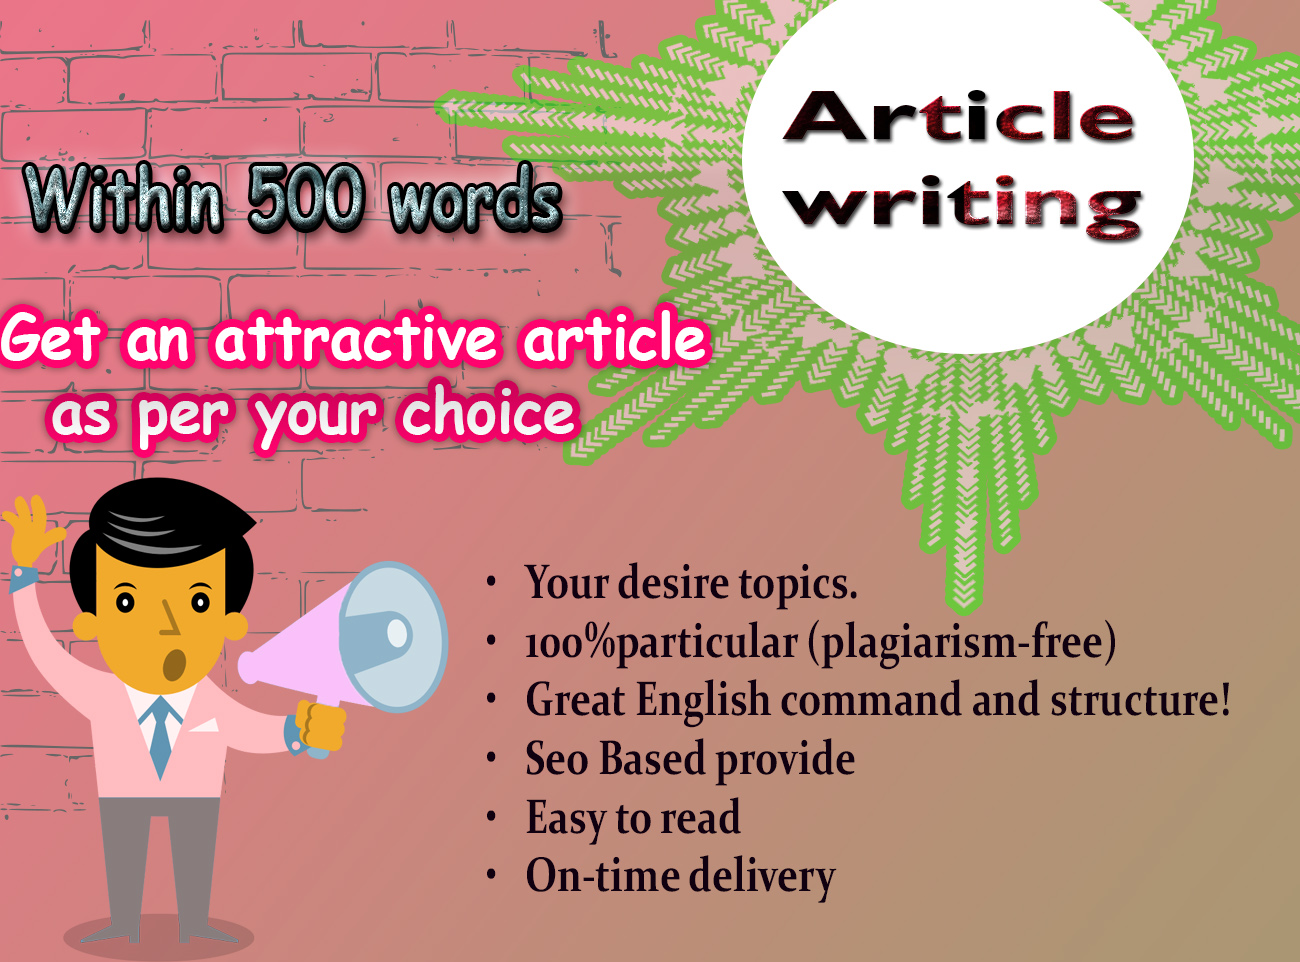 Get an amazing article within 500 words at any topics